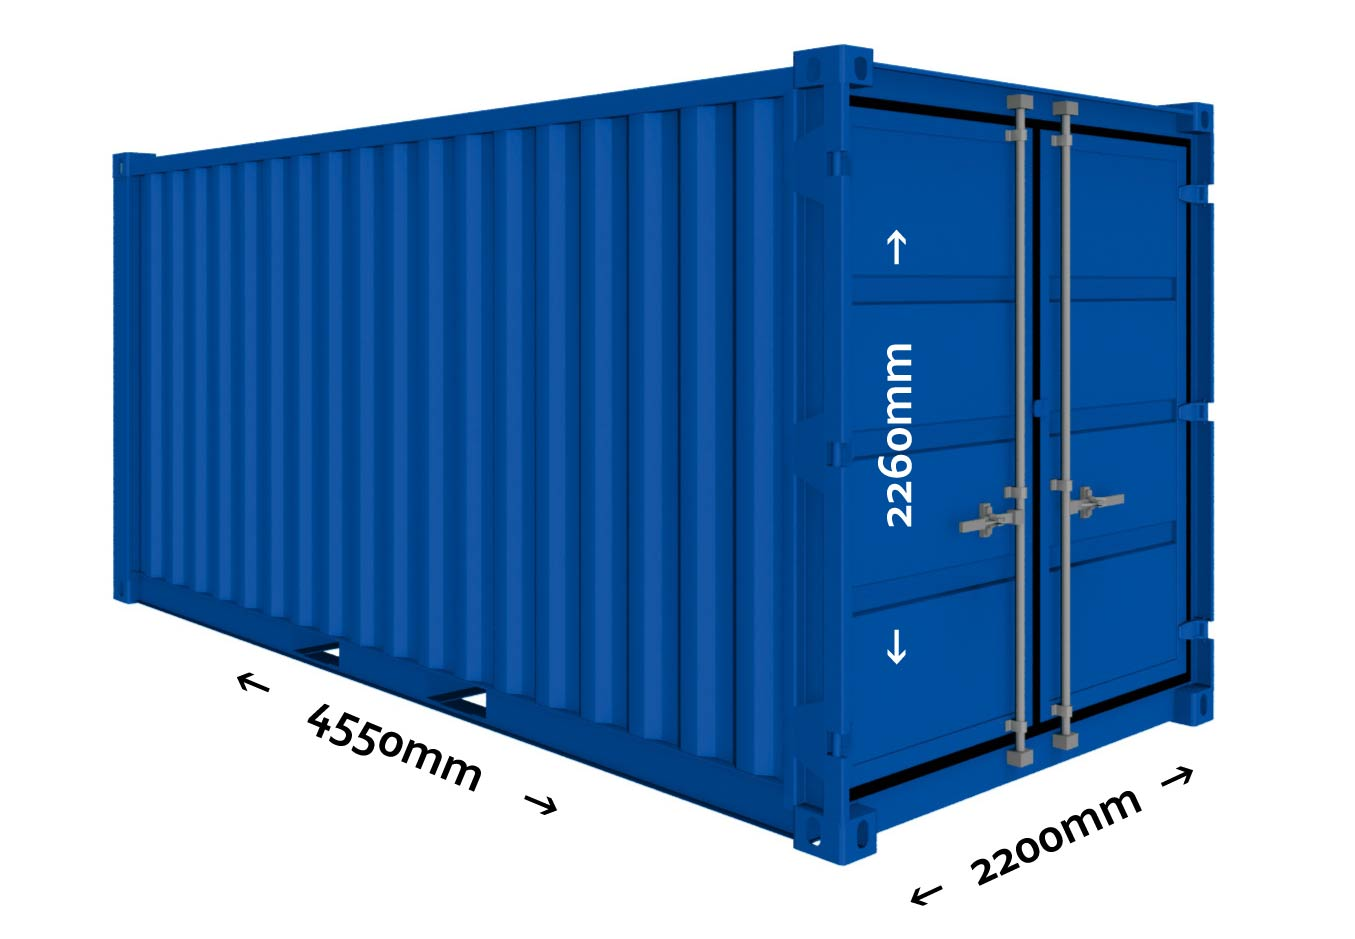 15 ft Opslagcontainer Containex 3D afbeelding